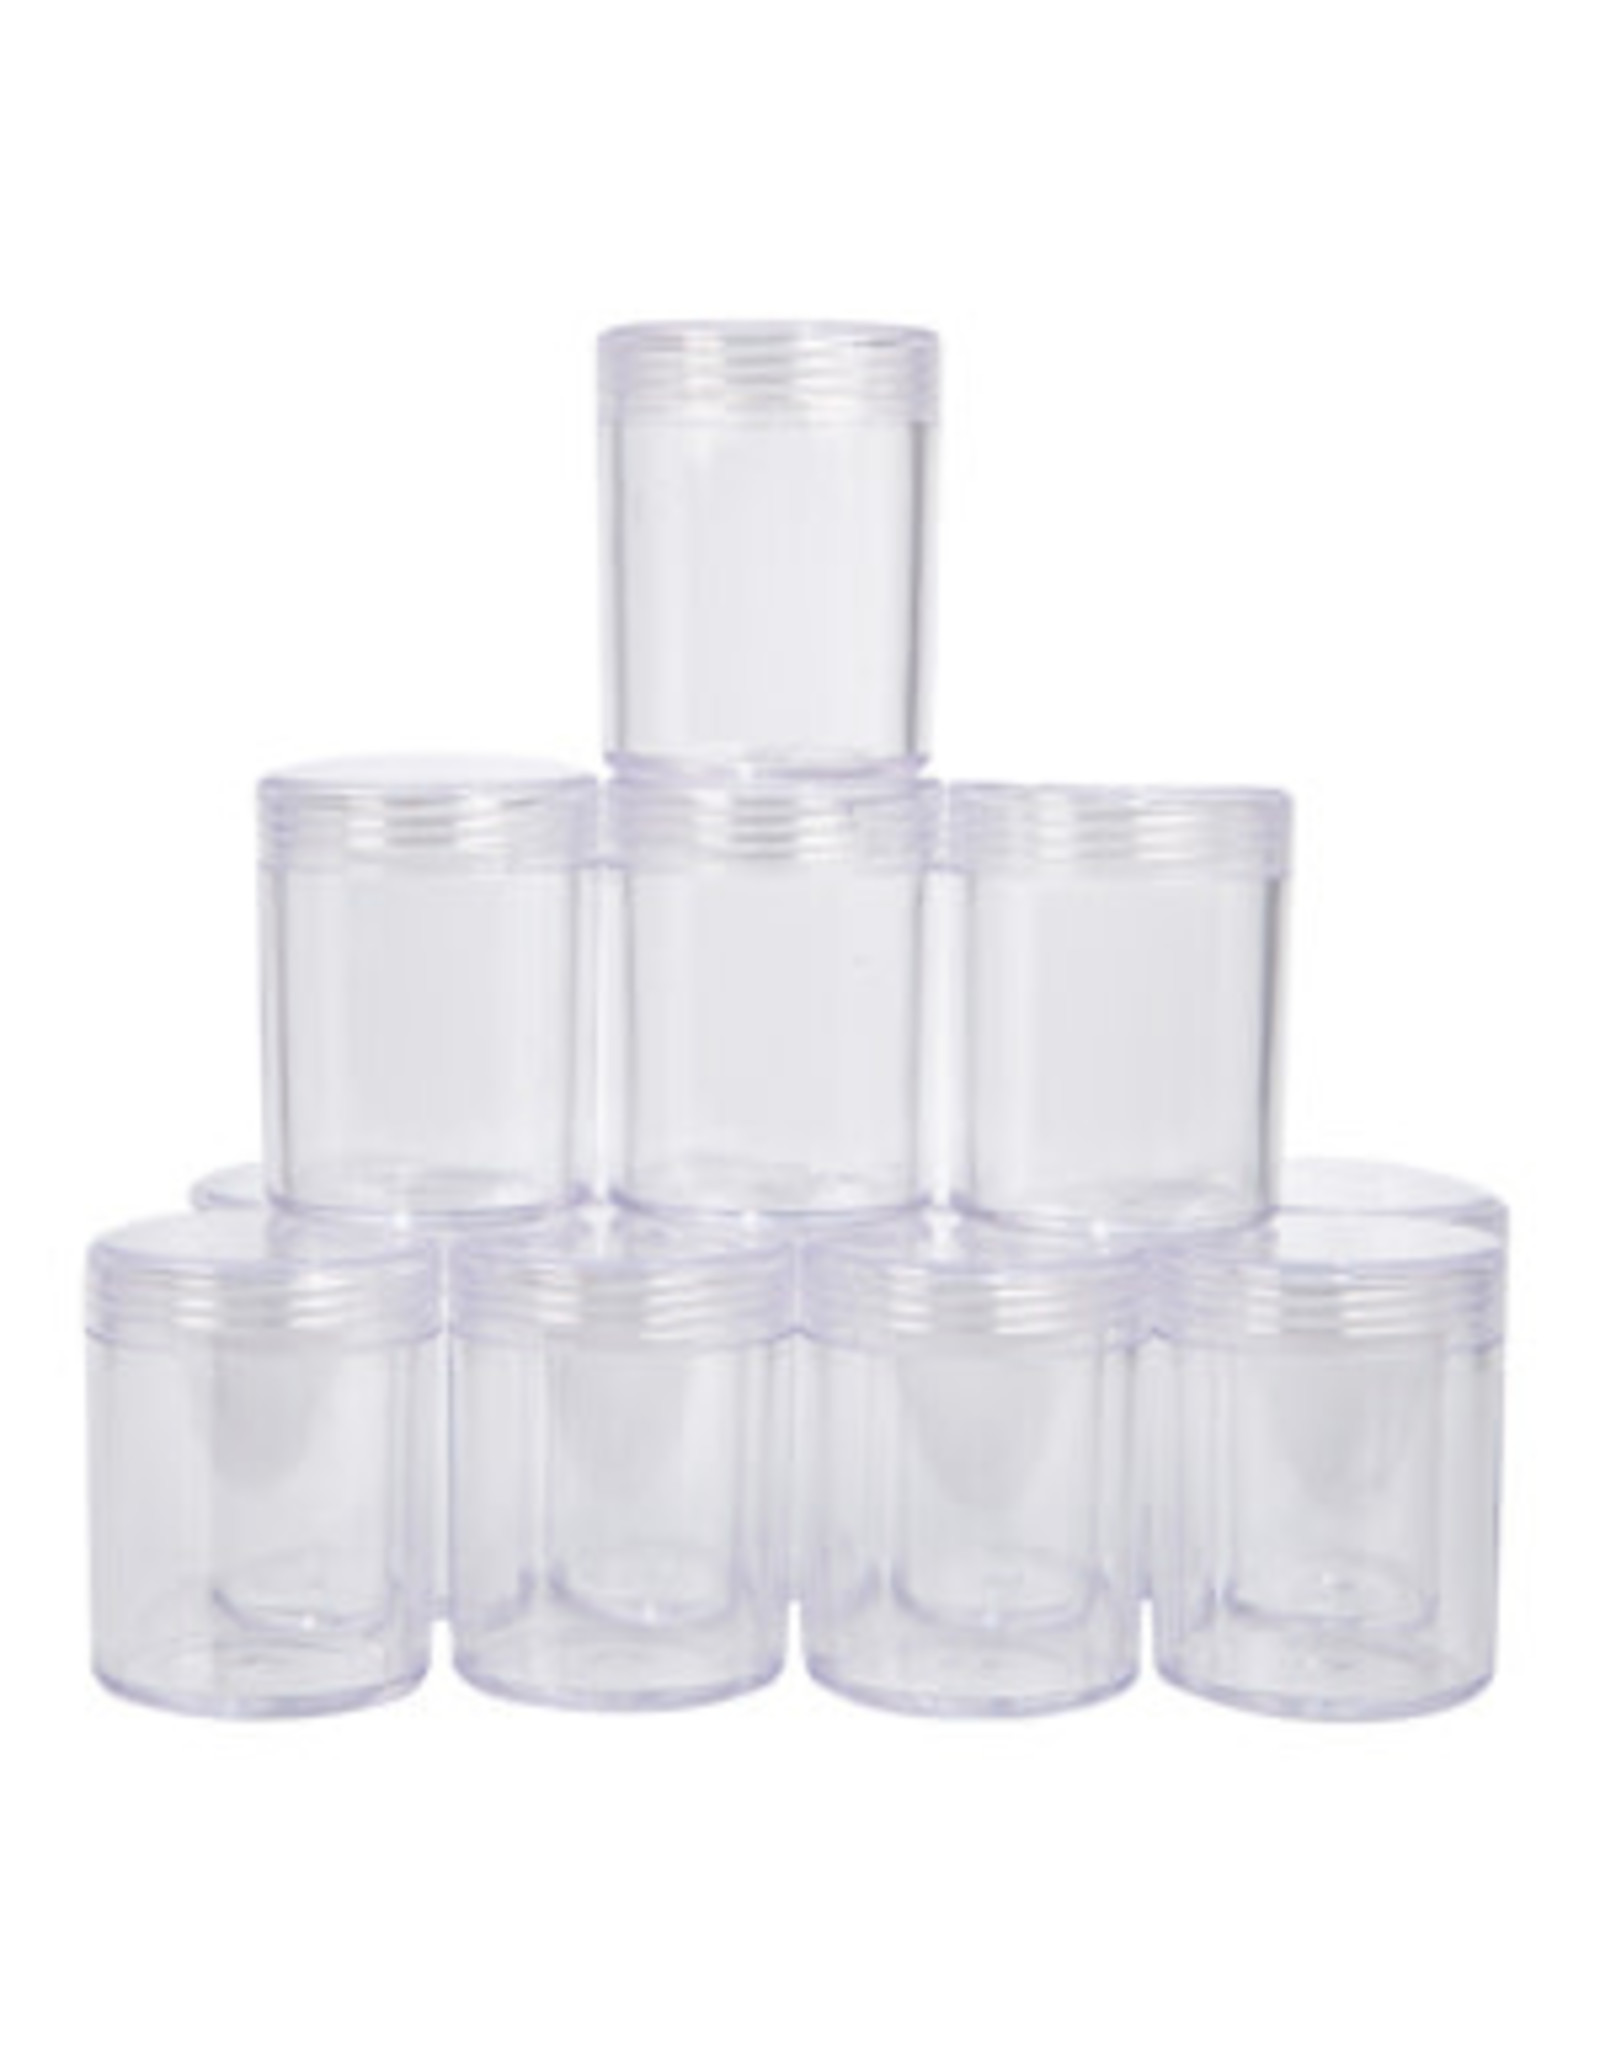 12 Clear Jar with Screw Lids  3.8x5cm in Box 15.9x12x5.3cm